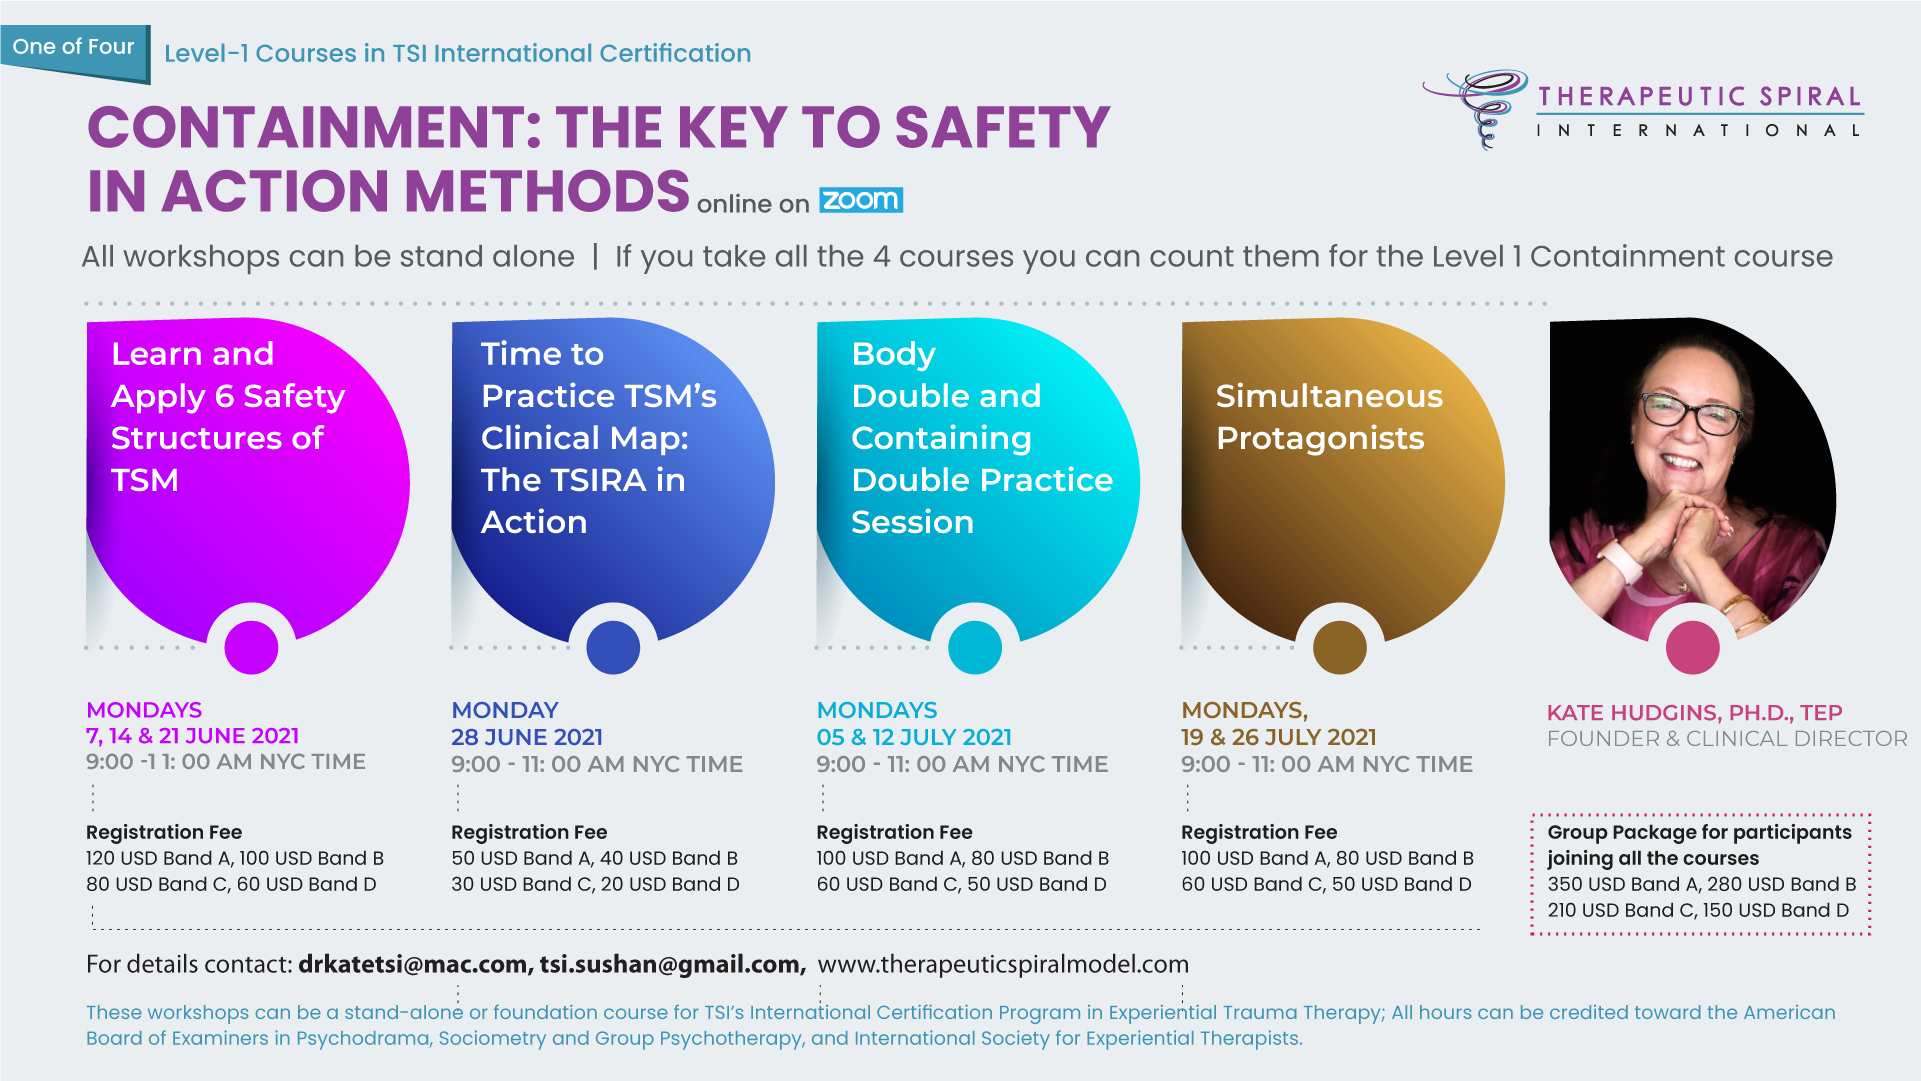 Containment, the Key to Safety with Action Methods